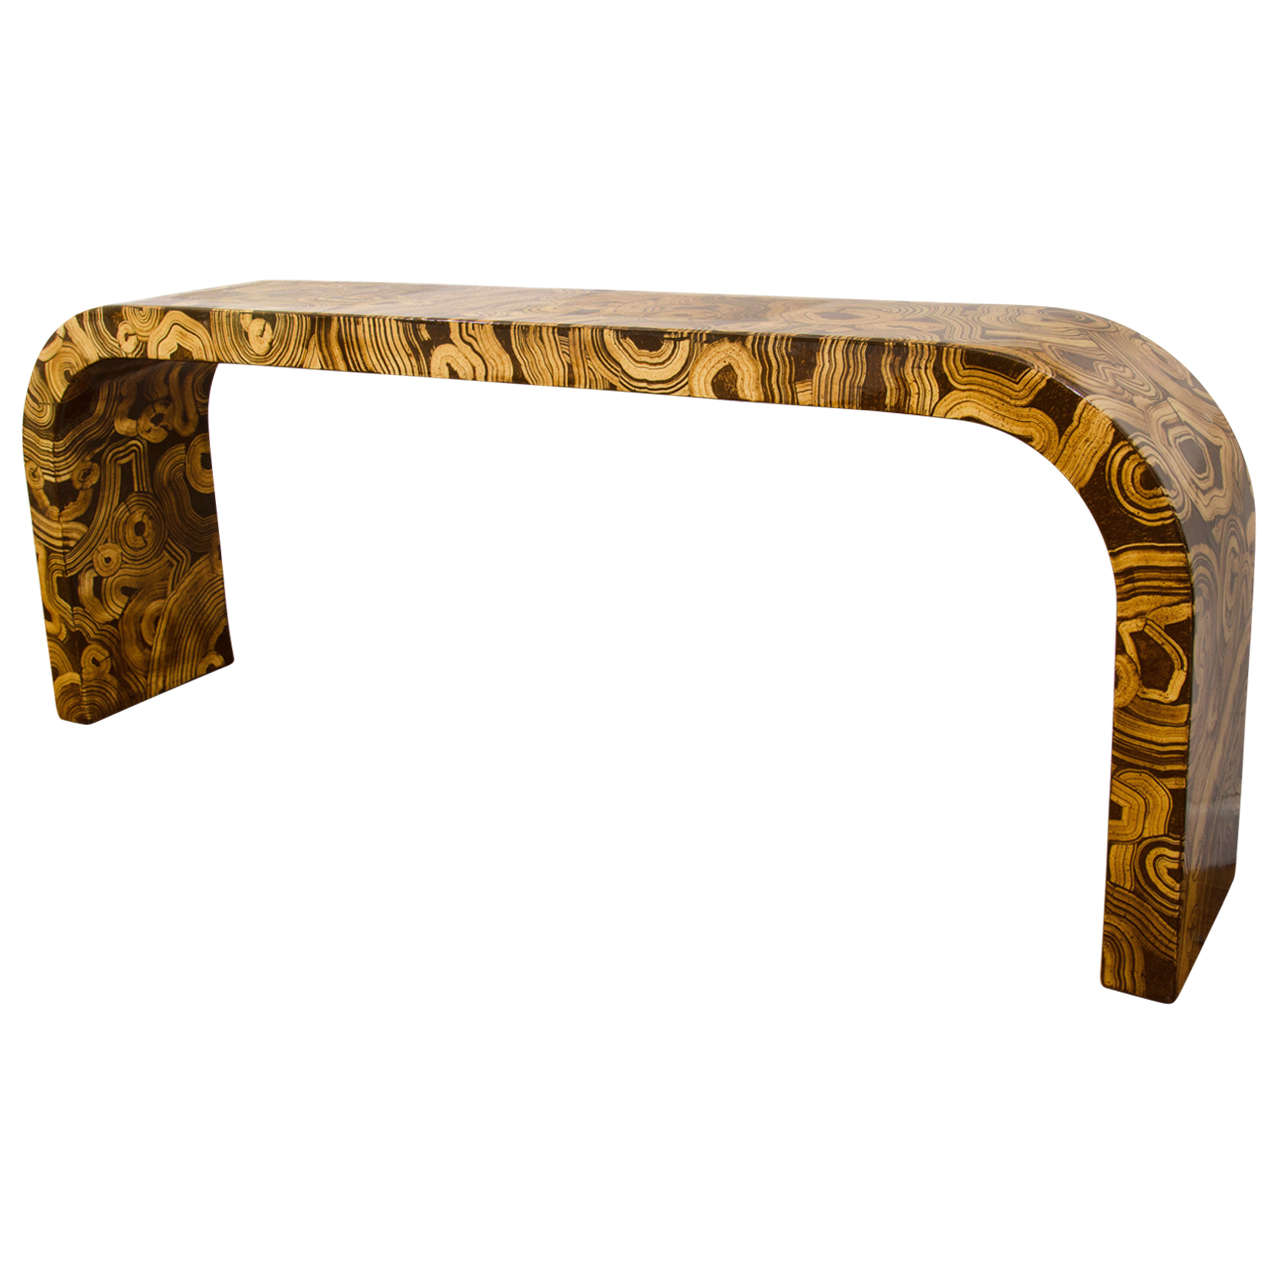 Hand-Painted Waterfall Console Table